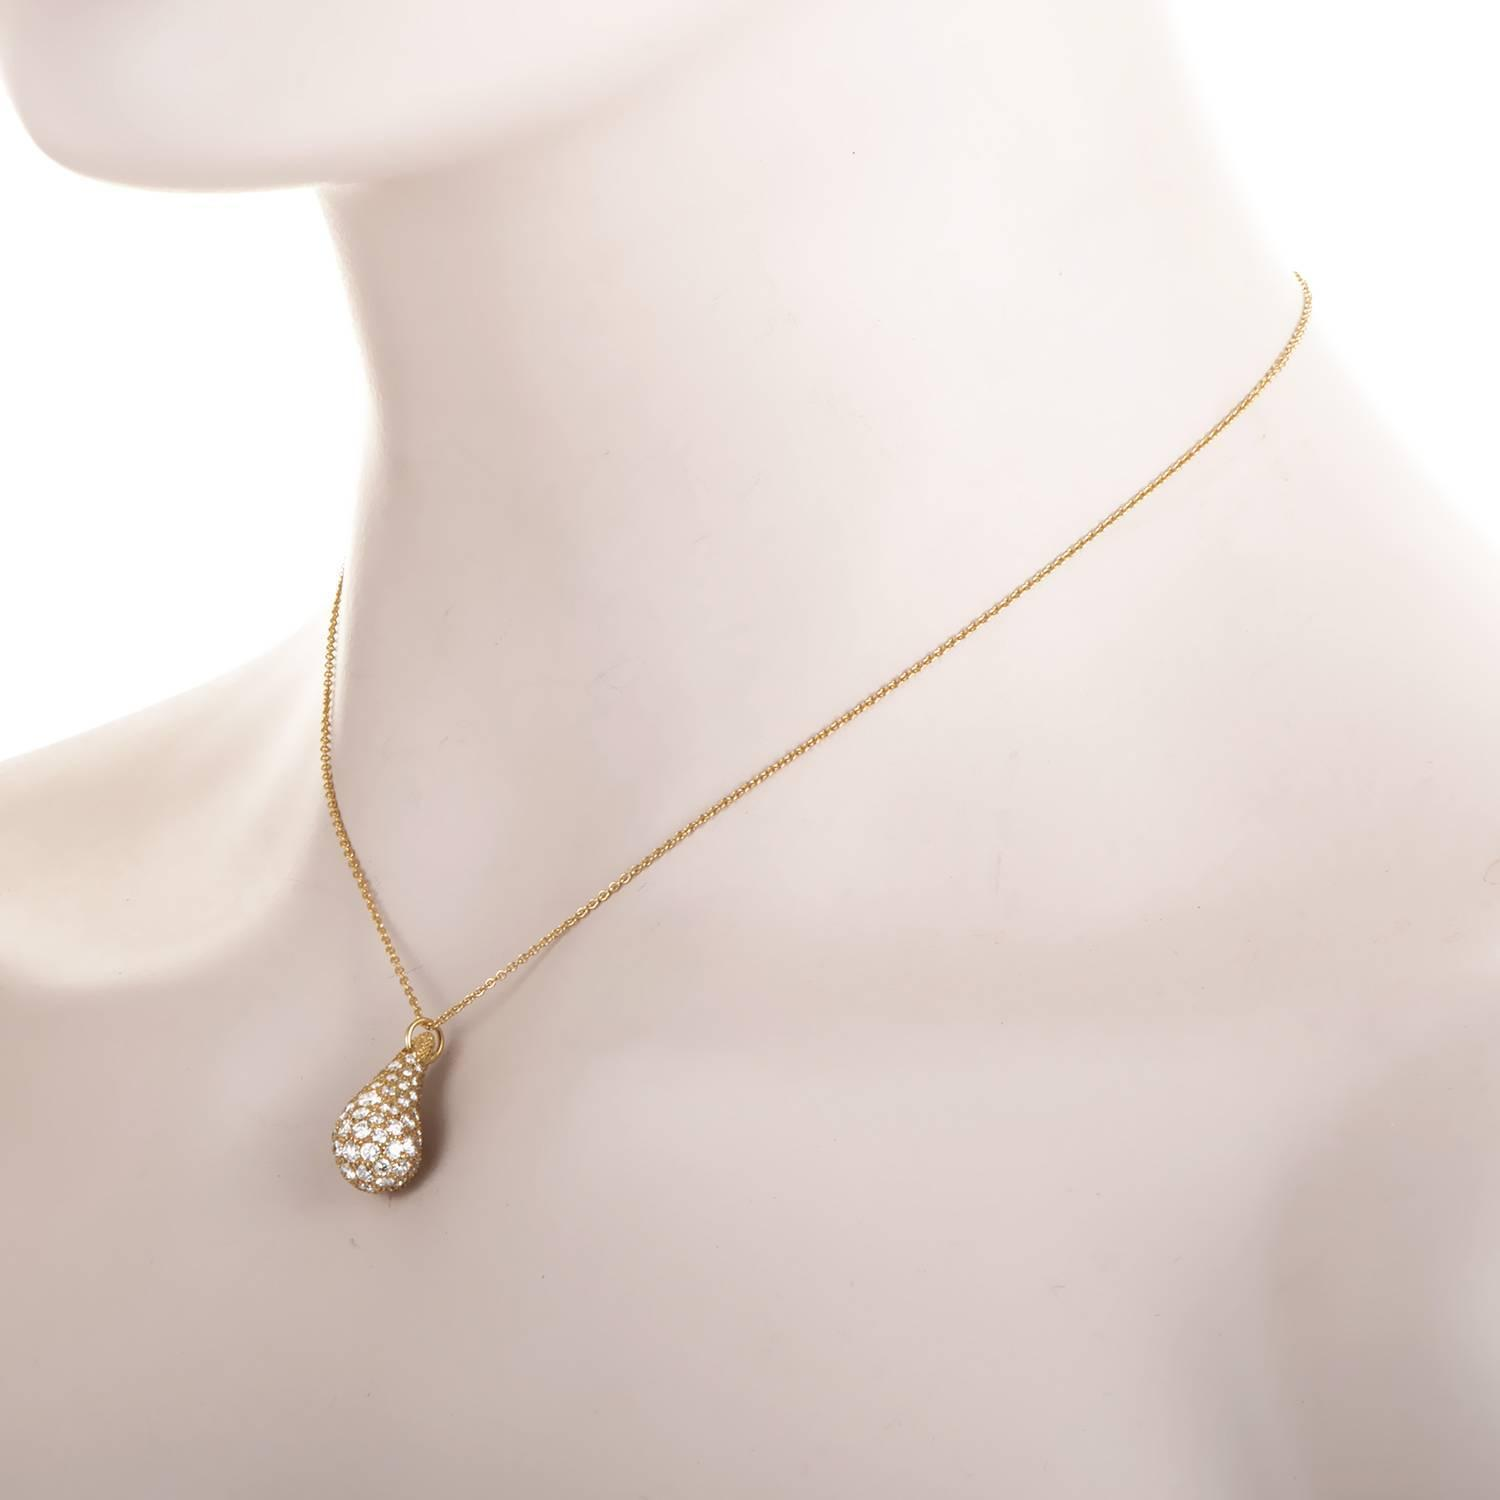 b7b3dbe46 Tiffany and Co. Elsa Peretti diamond pave Gold Teardrop Pendant Necklace at  1stdibs